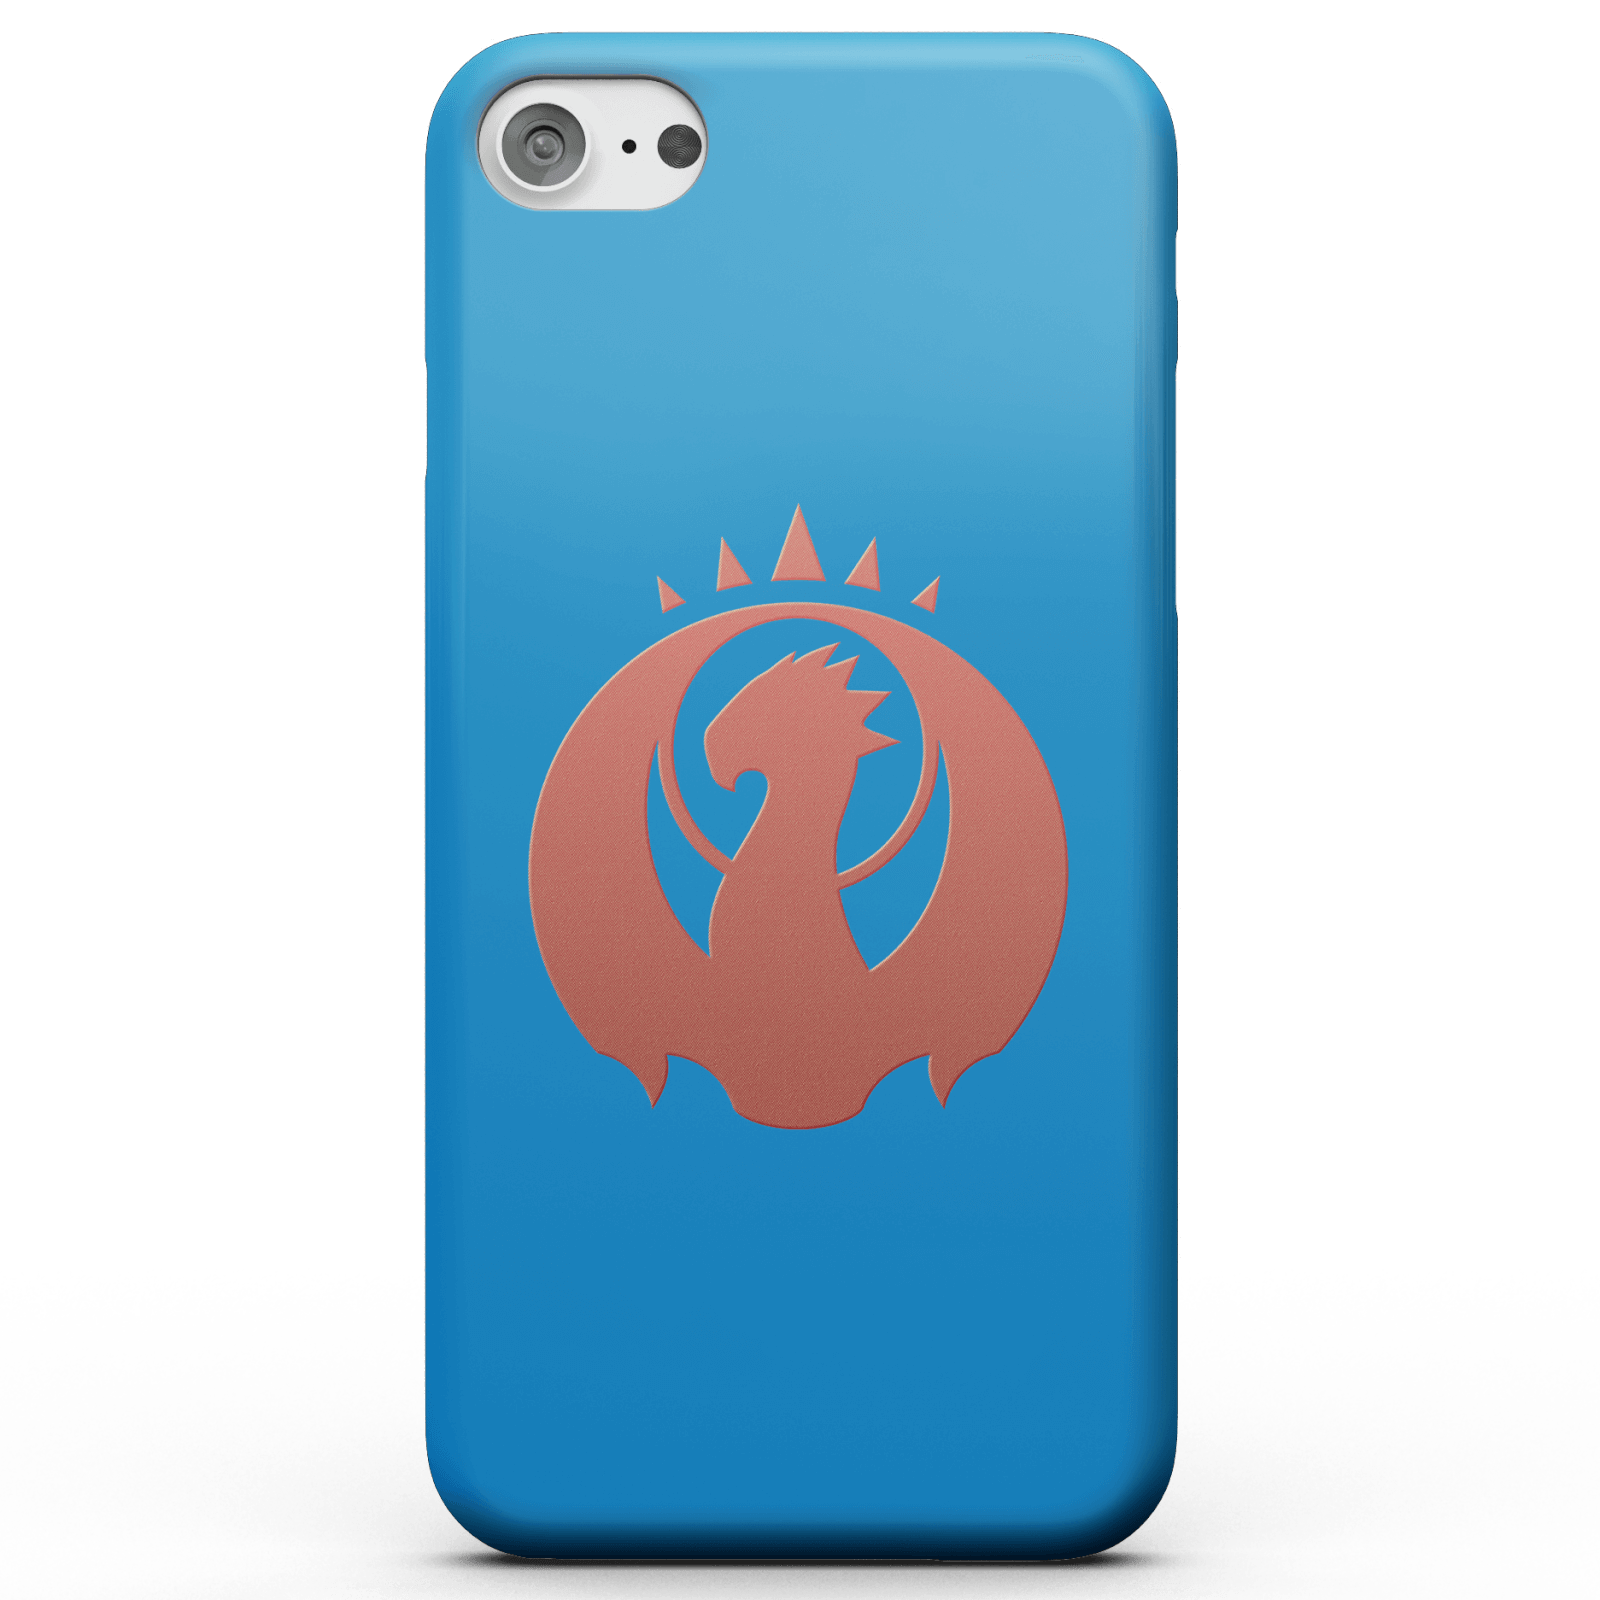 Funda Móvil Magic The Gathering Izzet para iPhone y Android - Samsung S7 - Carcasa rígida - Mate de Magic The Gathering